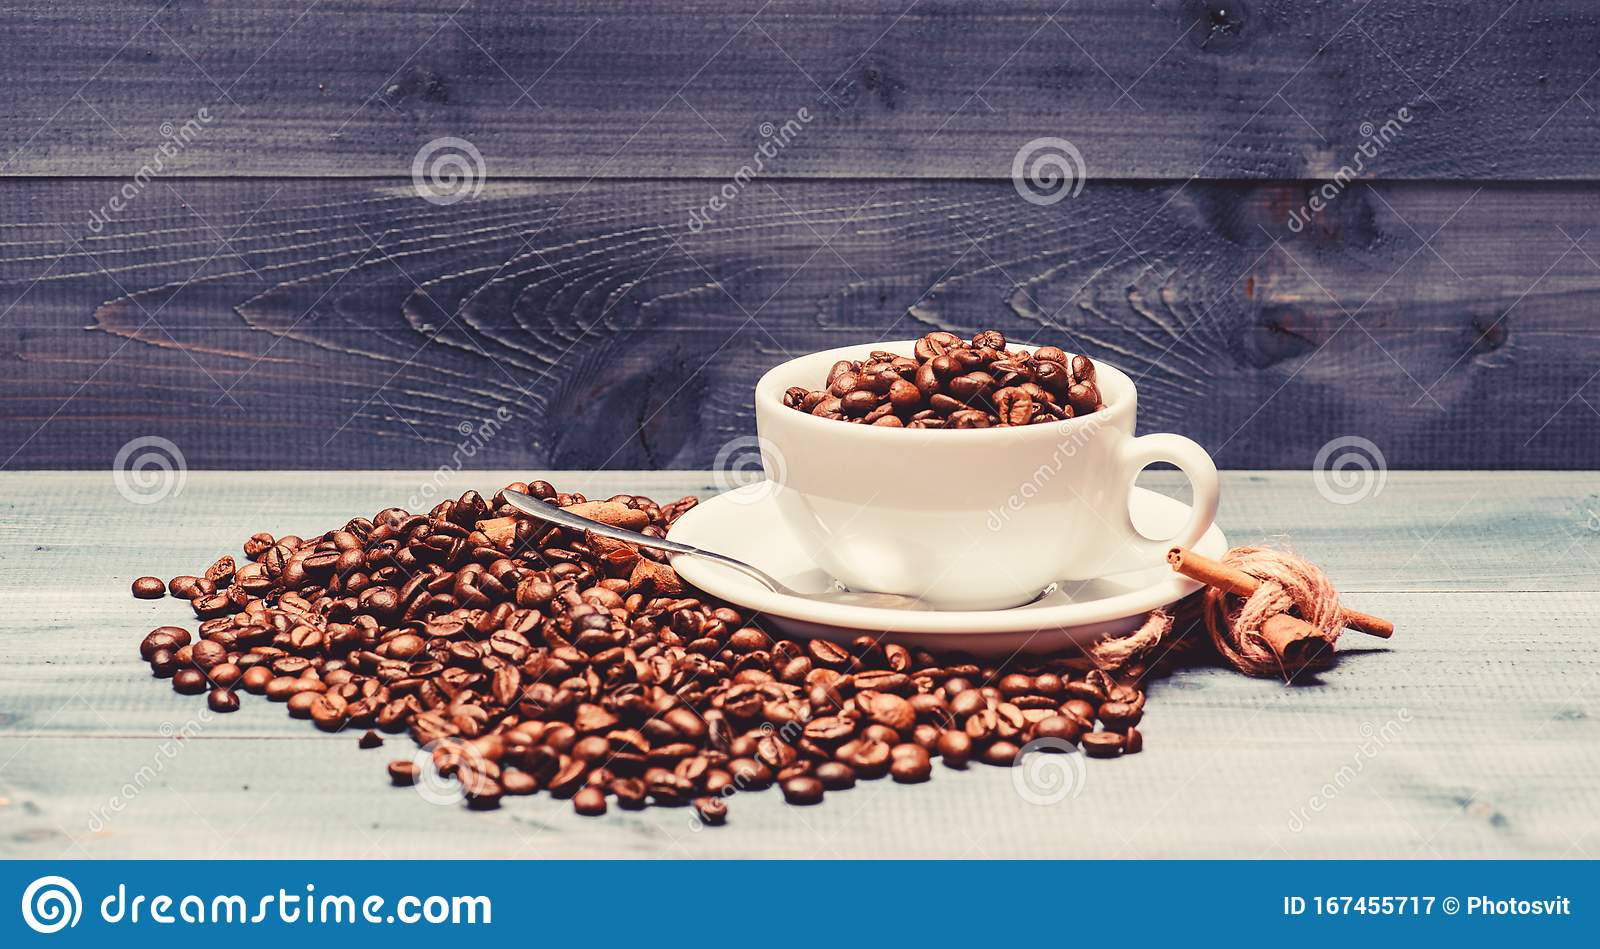 Cafe Drinks Menu Coffee Break And Relax Fresh Roasted Coffee Beans Caffeine Concept Inspiration And Energy Charge Stock Image Image Of Coffee Espresso 167455717